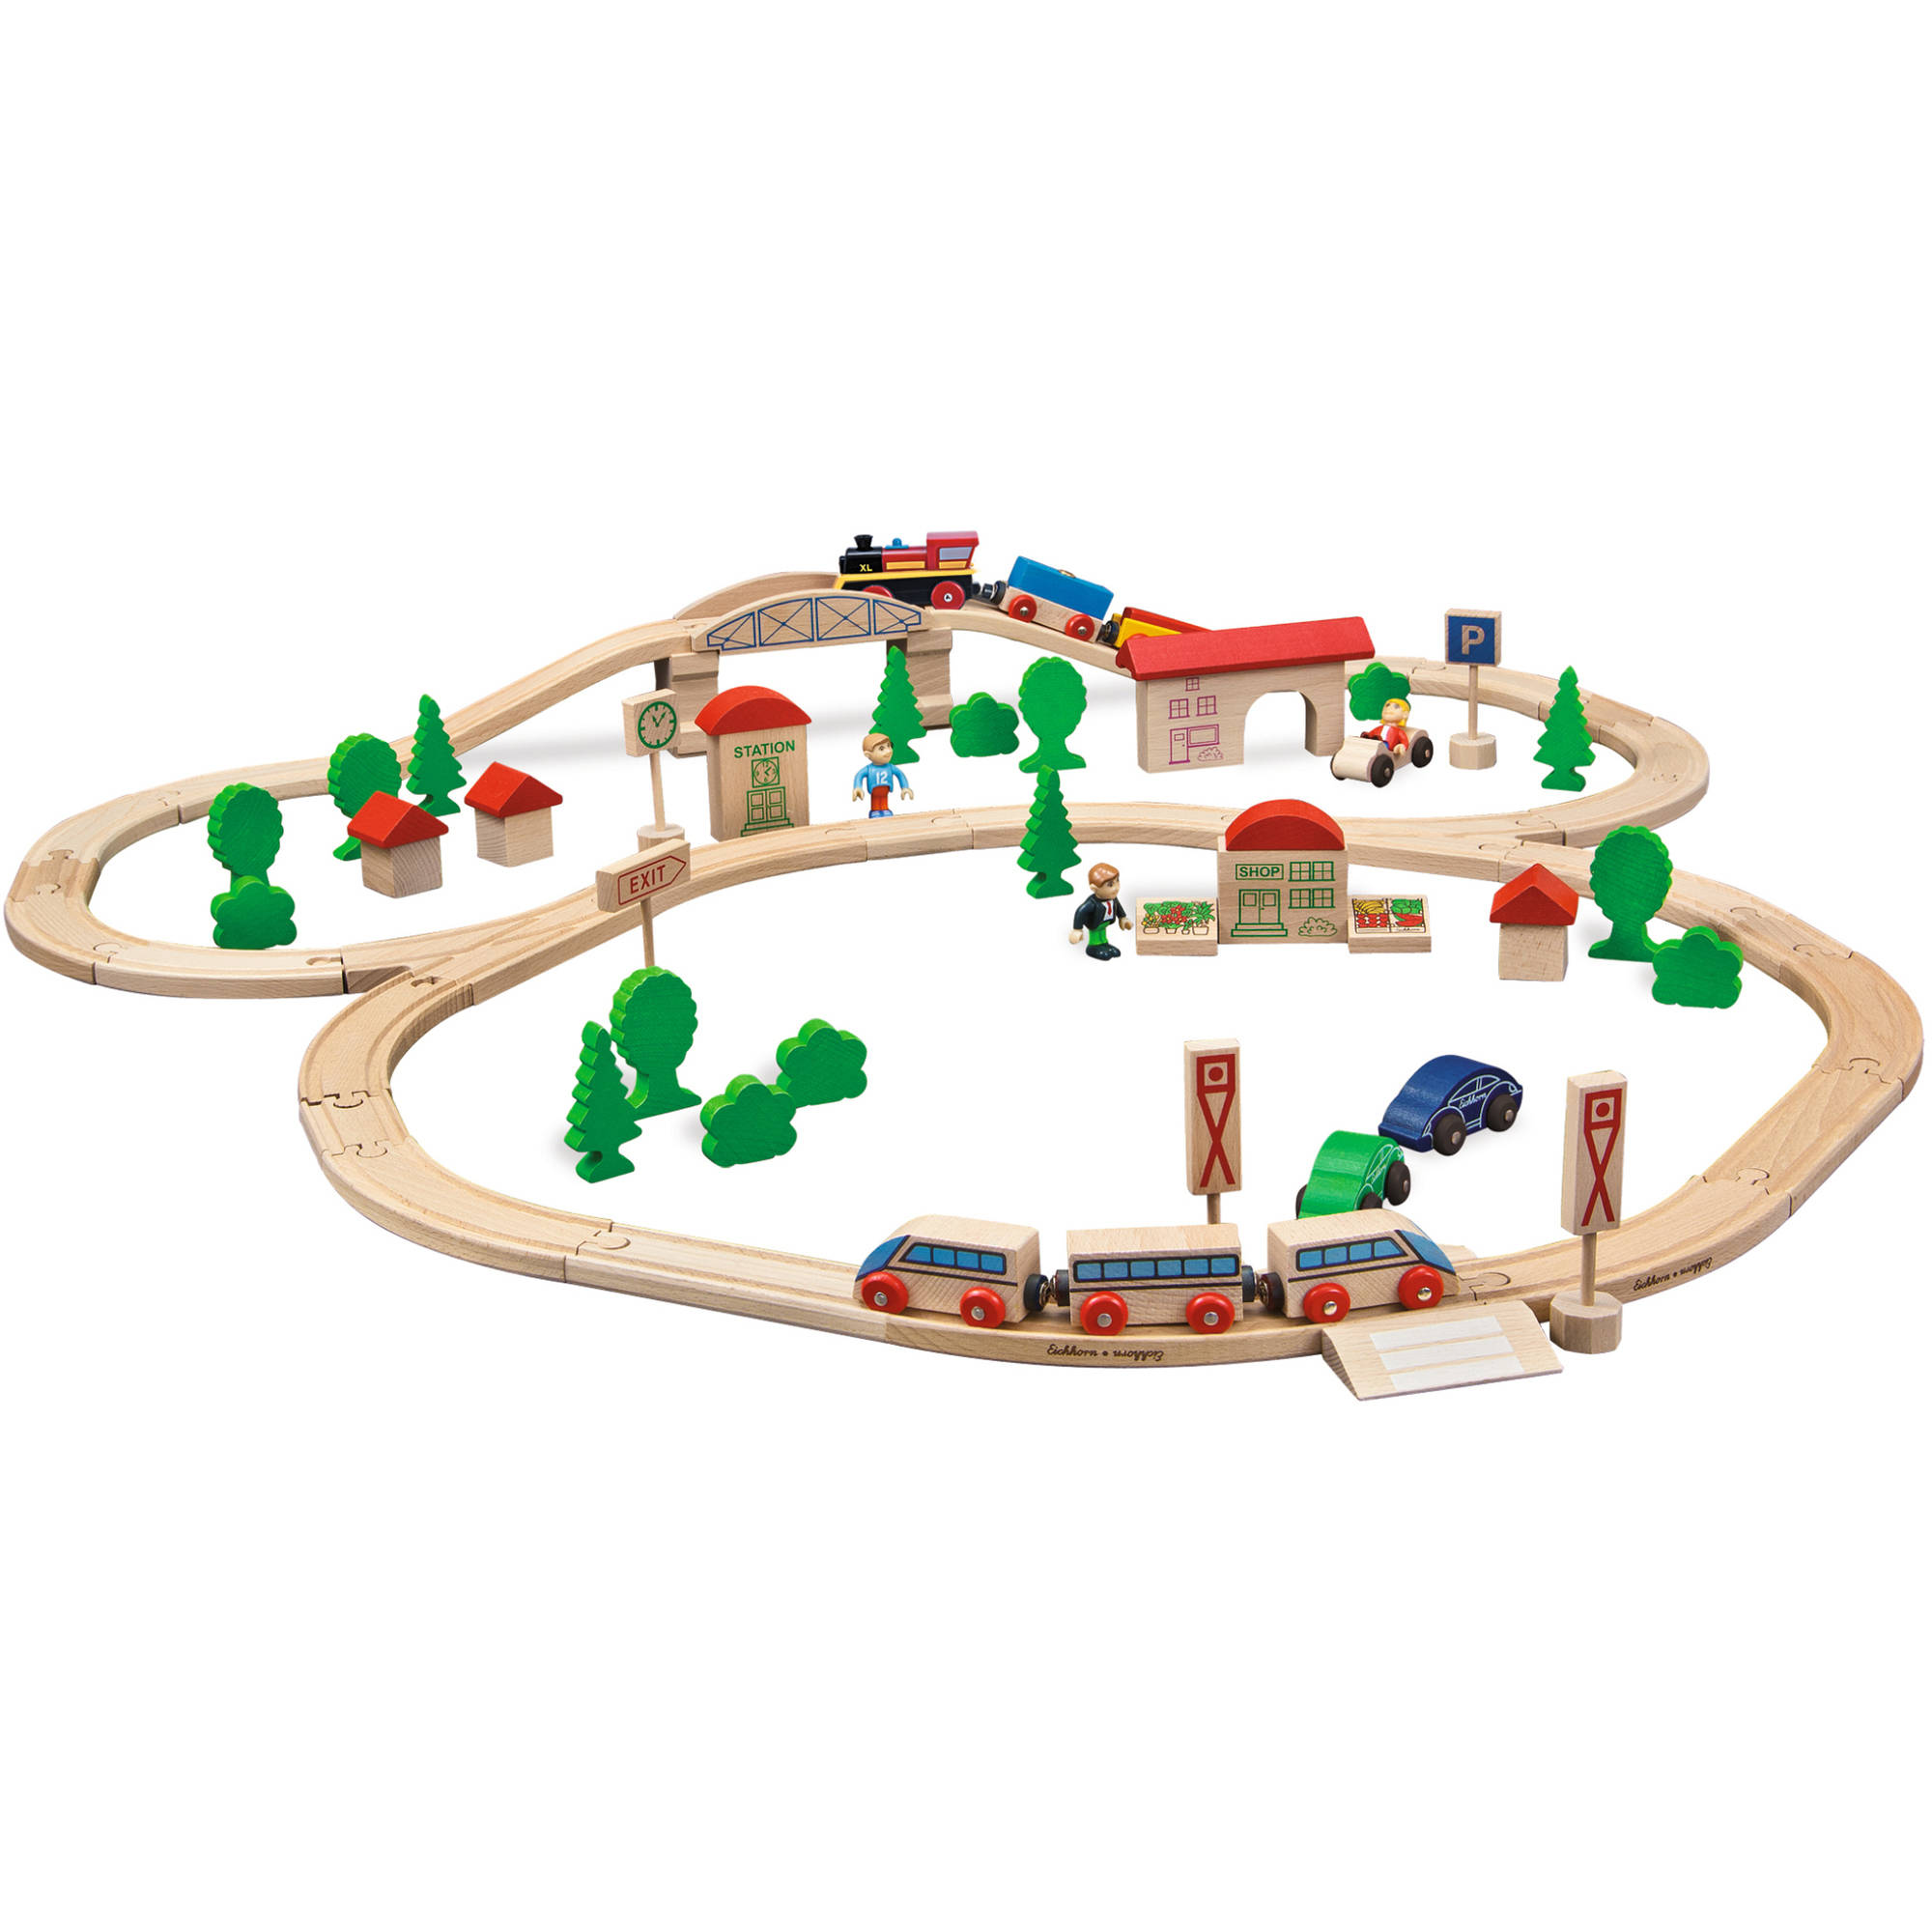 Eichhorn 81-Piece Wooden Train Set with Bridge